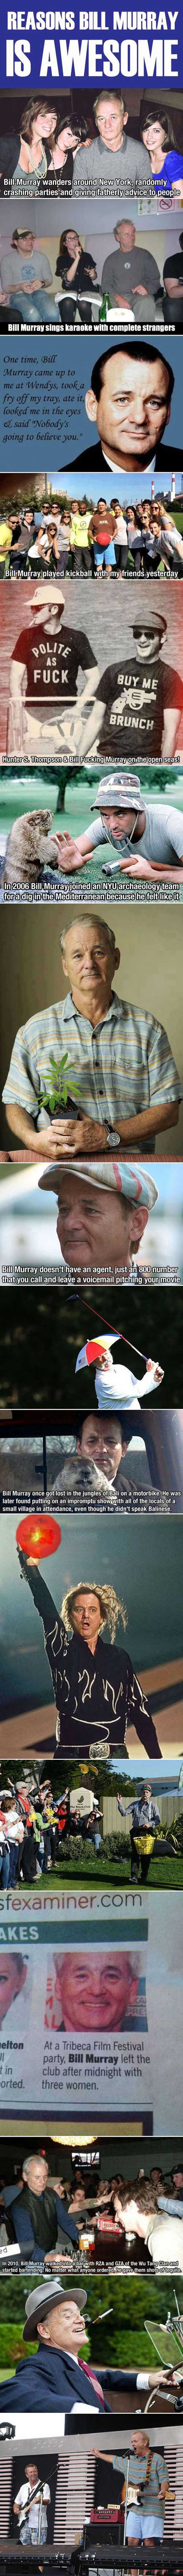 Reasons Bill Murray Is Awesome! - 16 Pics